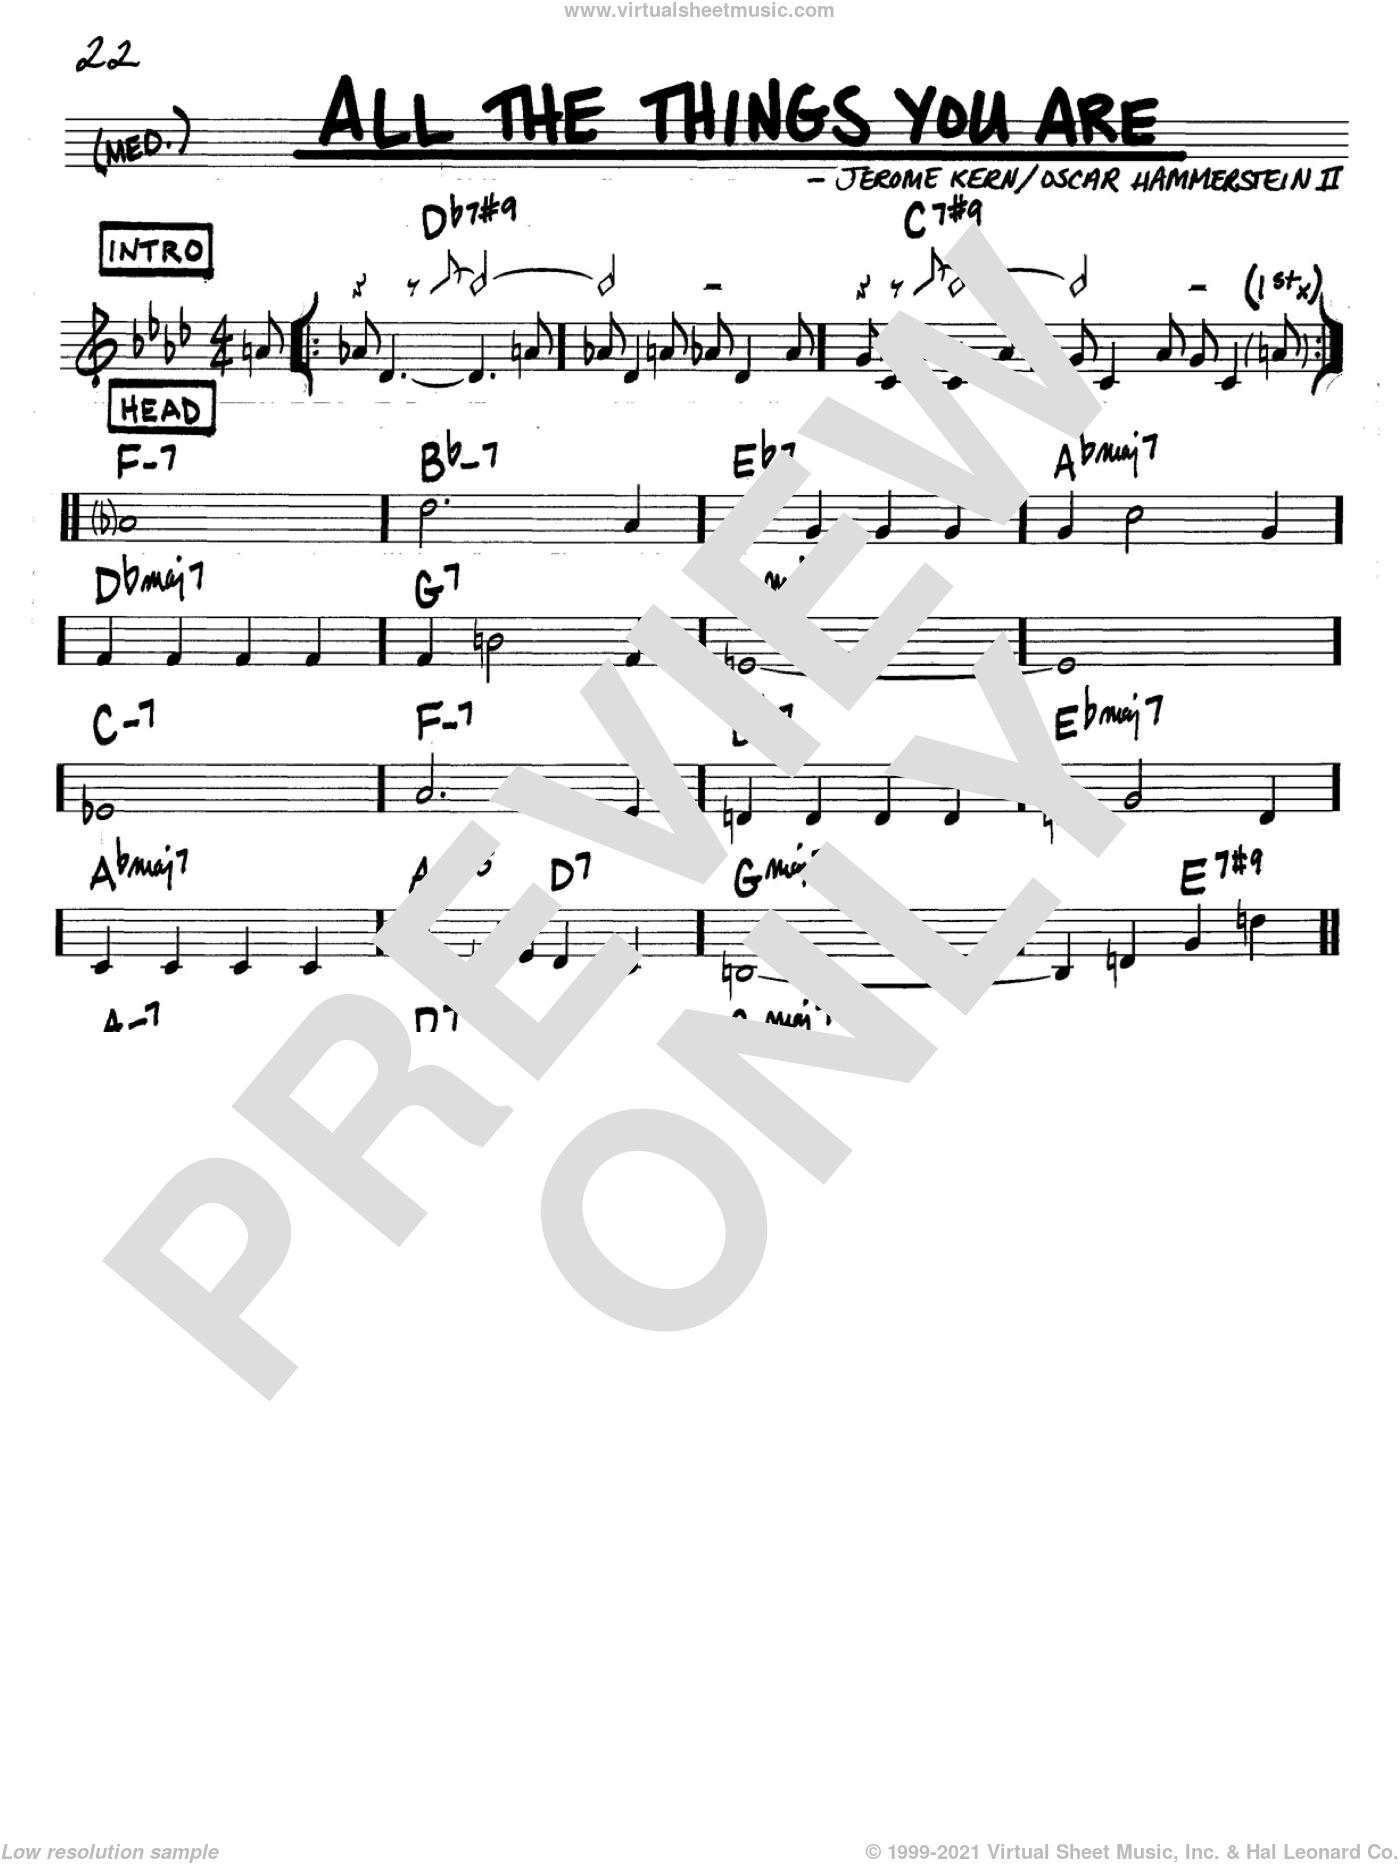 All The Things You Are sheet music for voice and other instruments (C) by Oscar II Hammerstein and Jerome Kern. Score Image Preview.